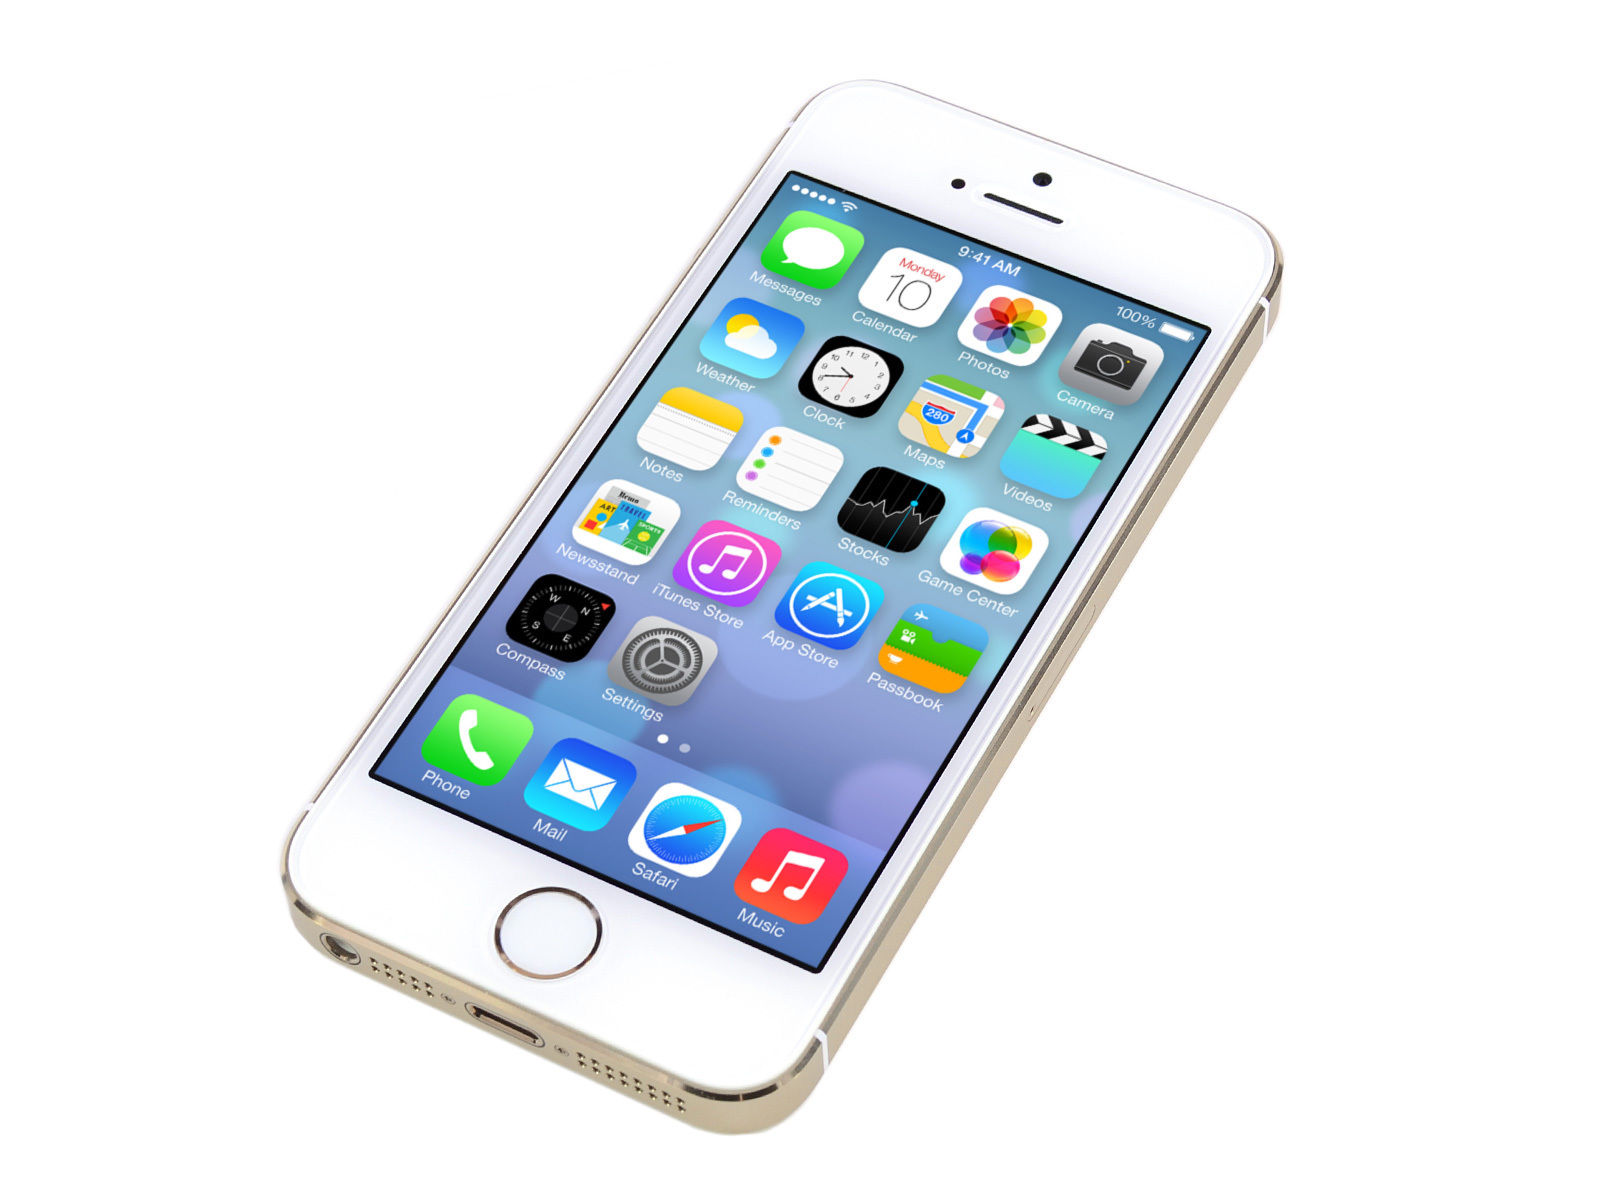 iphone 5s gsm unlocked apple iphone 5s a1533 16gb gsm unlocked 4g lte ios 14808